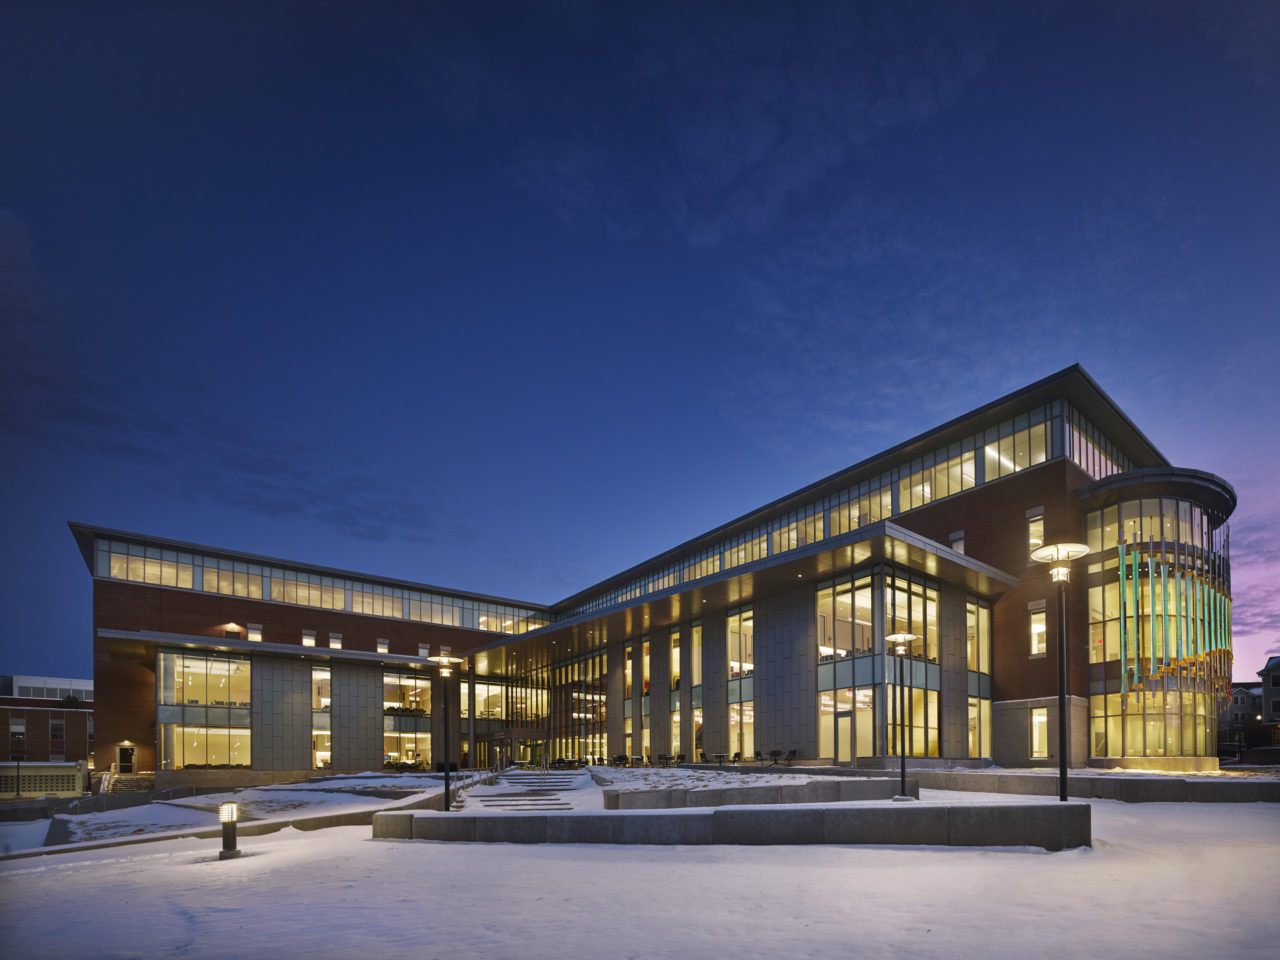 Rohrer College of Business at Rowan University exterior full view with Threshold laminated dichroic glass and perforated stainless steel sculpture at right. / image 1